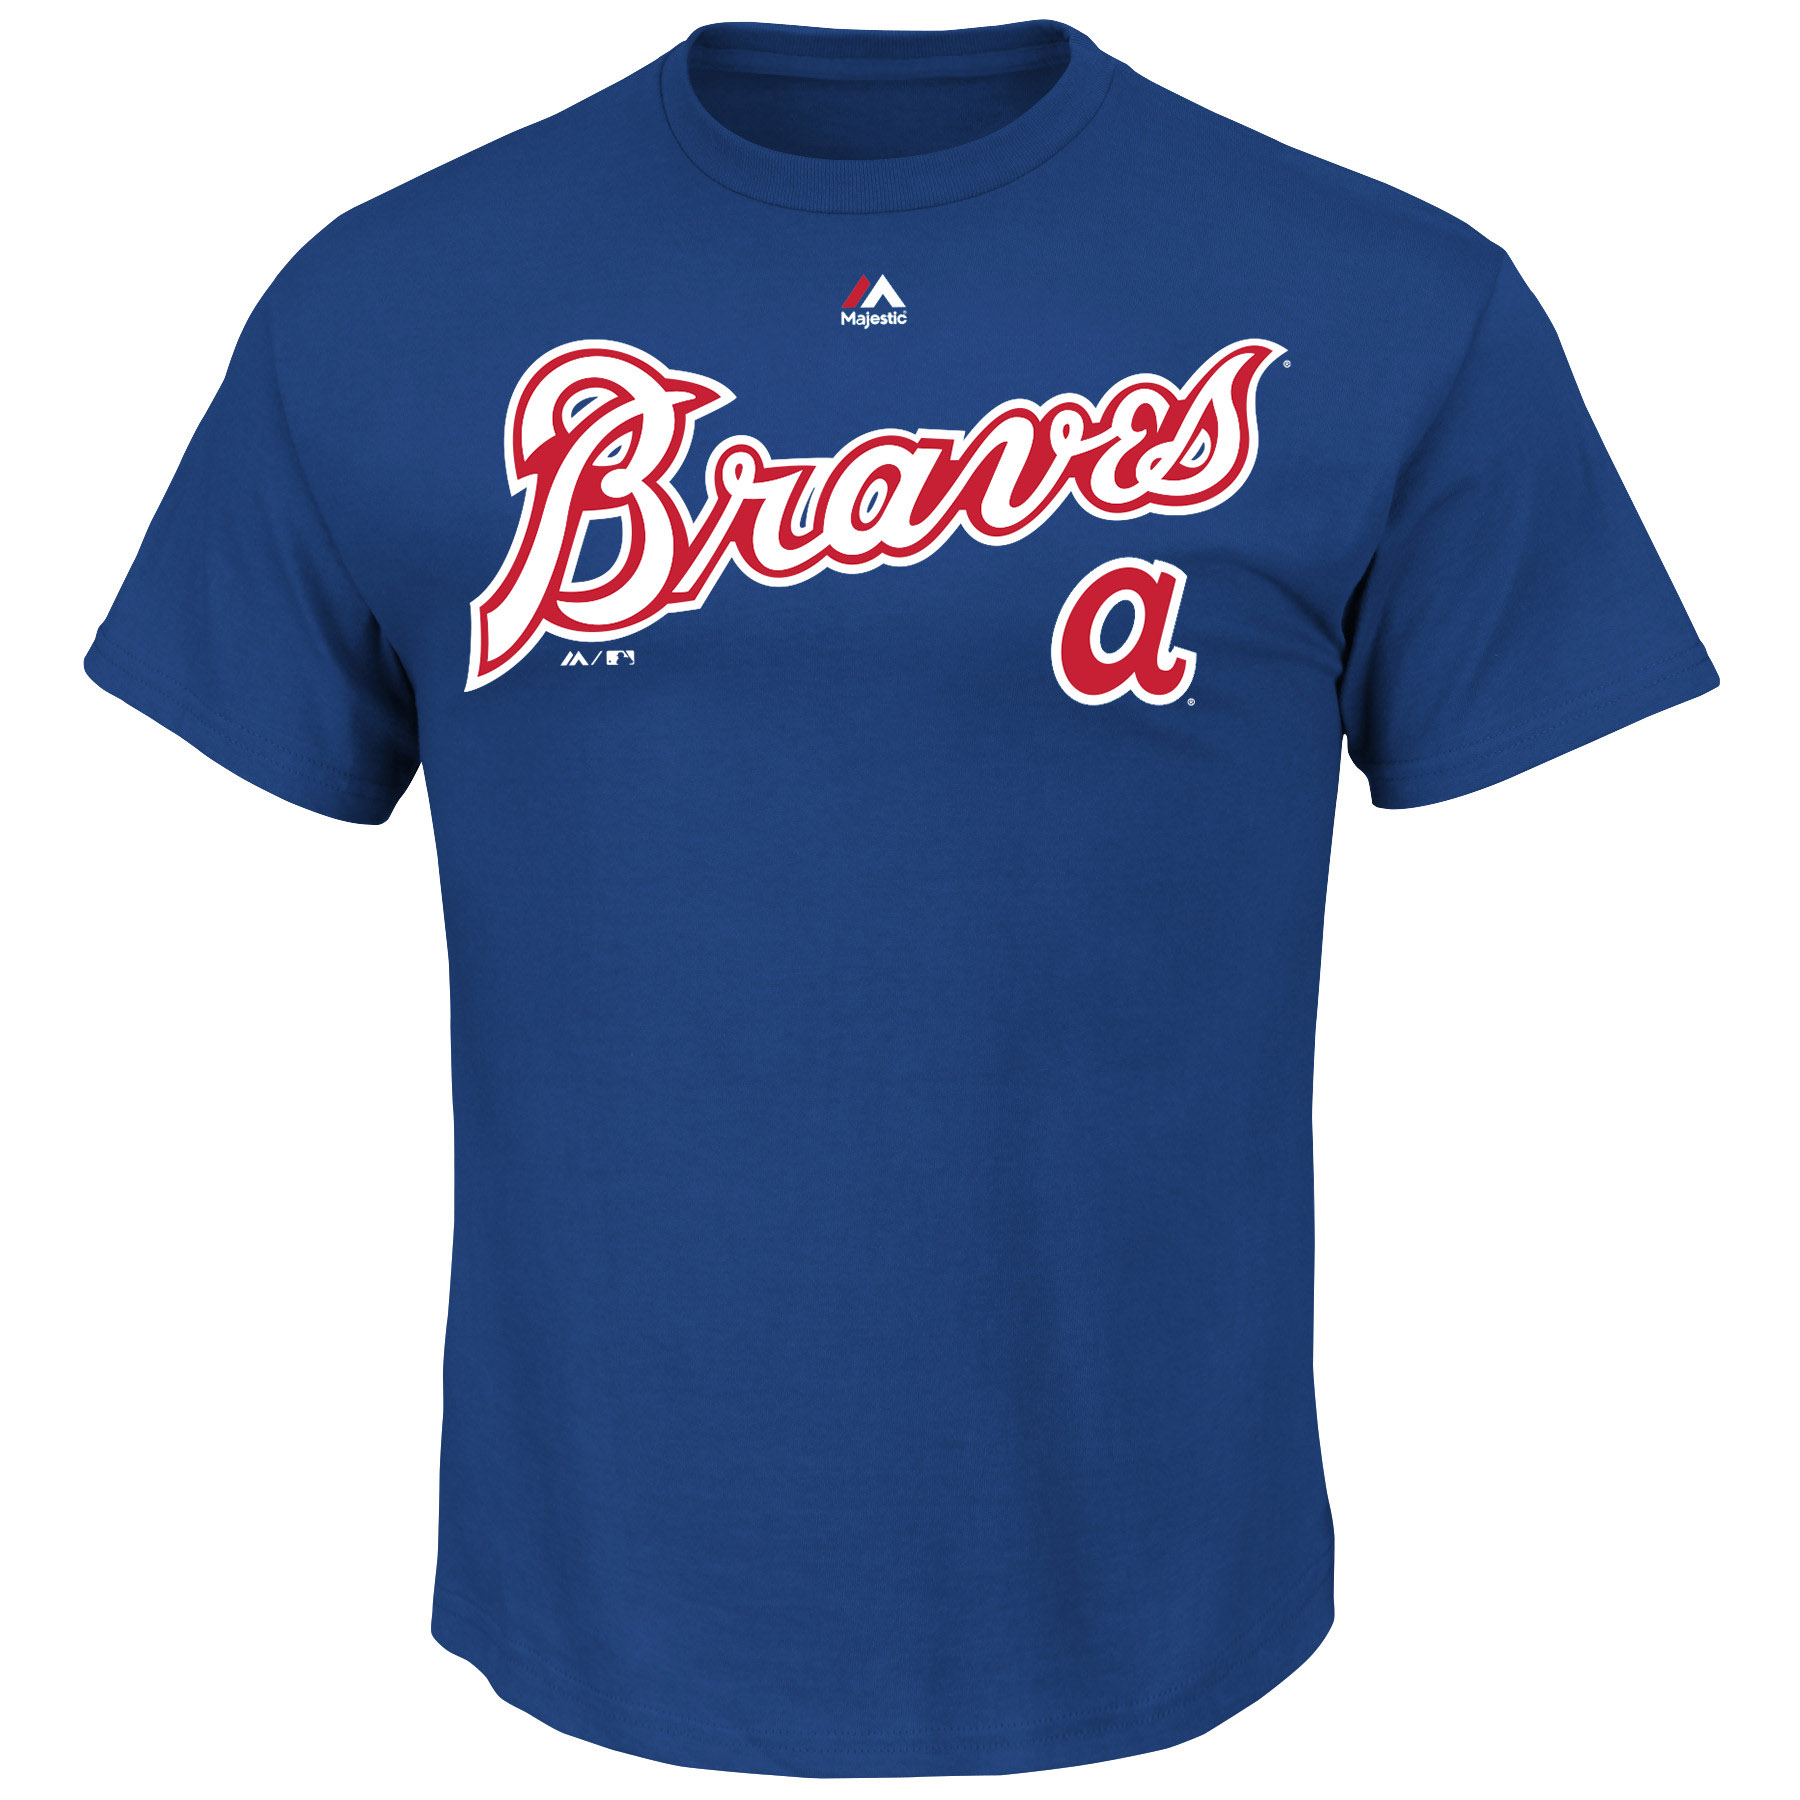 "Atlanta Braves Majestic MLB ""Series Sweep"" Cooperstown Men's S/S T-Shirt"